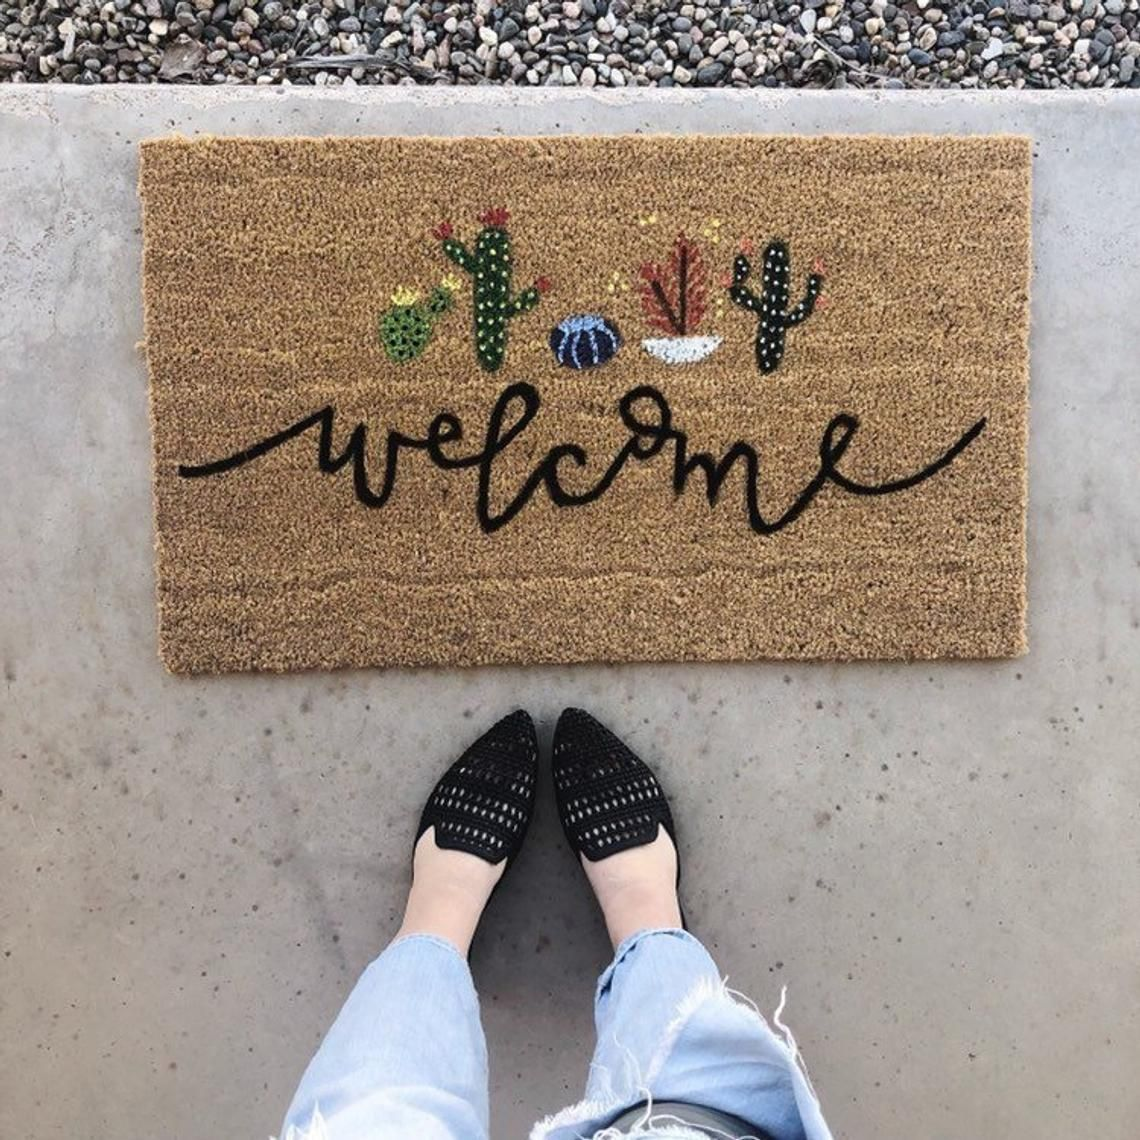 Welcome Cactus / cactus decor / hello welcome mat / hand painted, custom doormat / cute doormat / outdoor doormat / hand lettered